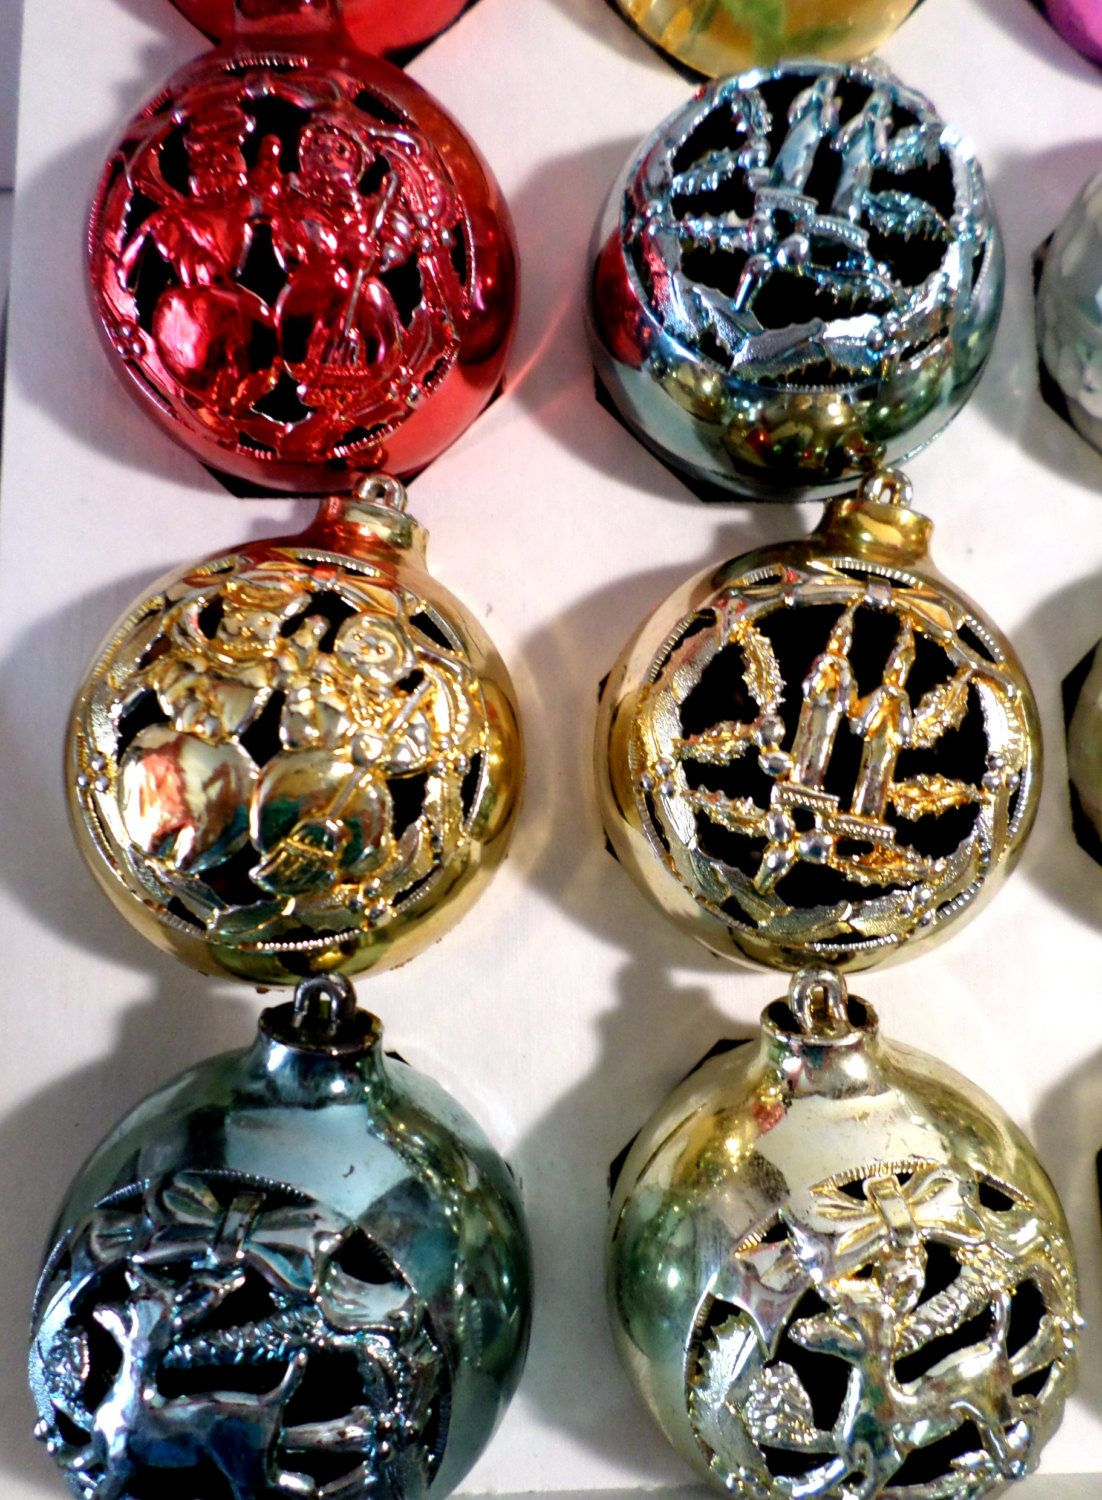 16 Plastic Bradford Bradford Ornaments Made In Usa 1950s Etsy How To Make Ornaments Vintage Christmas Ornaments Christmas Decorations